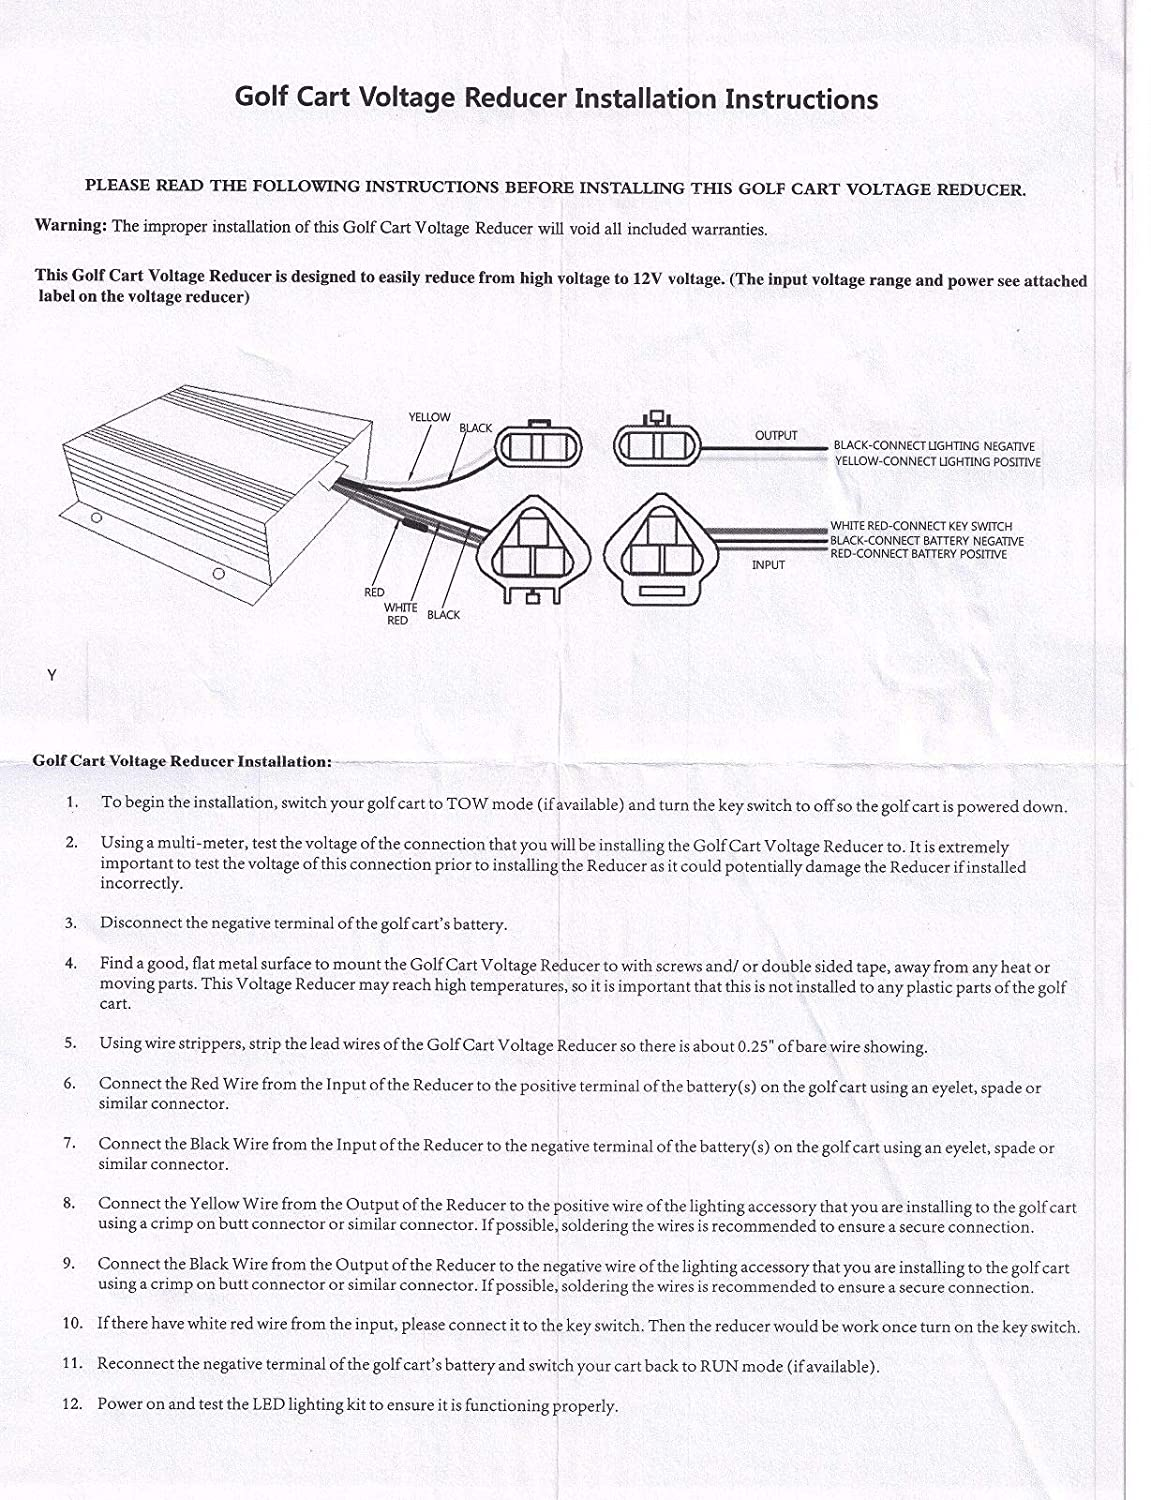 wiring diagram on golf cart amazon com: 3g voltage converter/reducer-  heavy duty for golf carts on